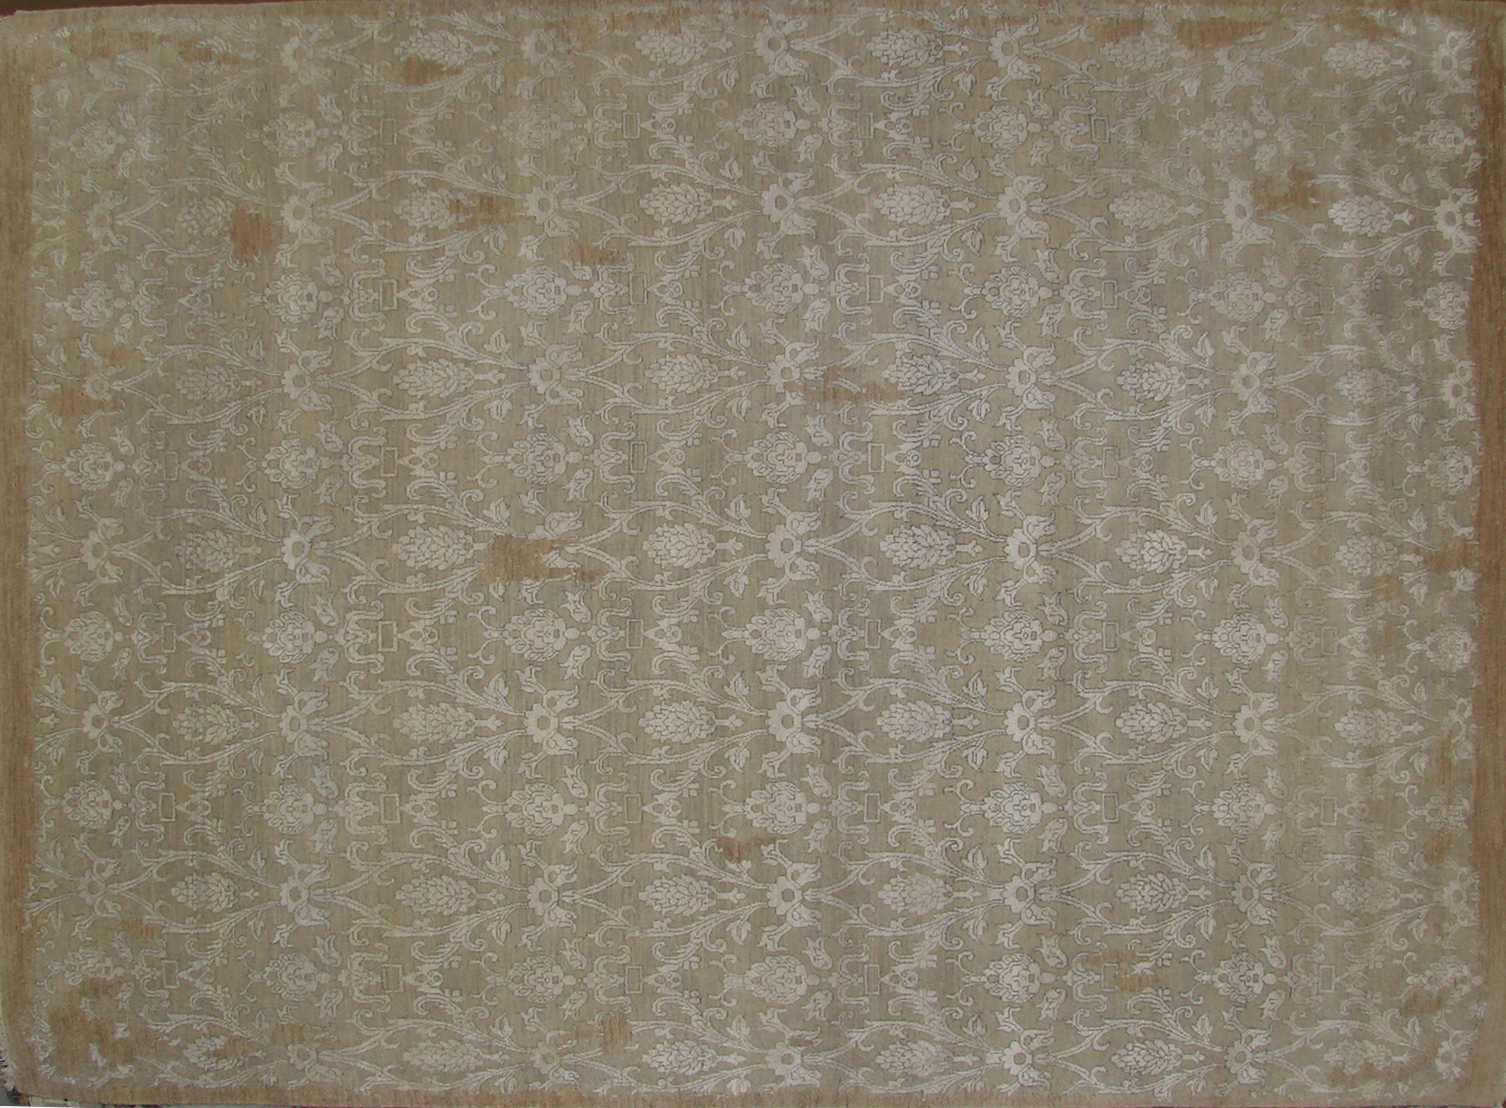 8x10 Contemporary Hand Knotted Wool Area Rug - MR19130